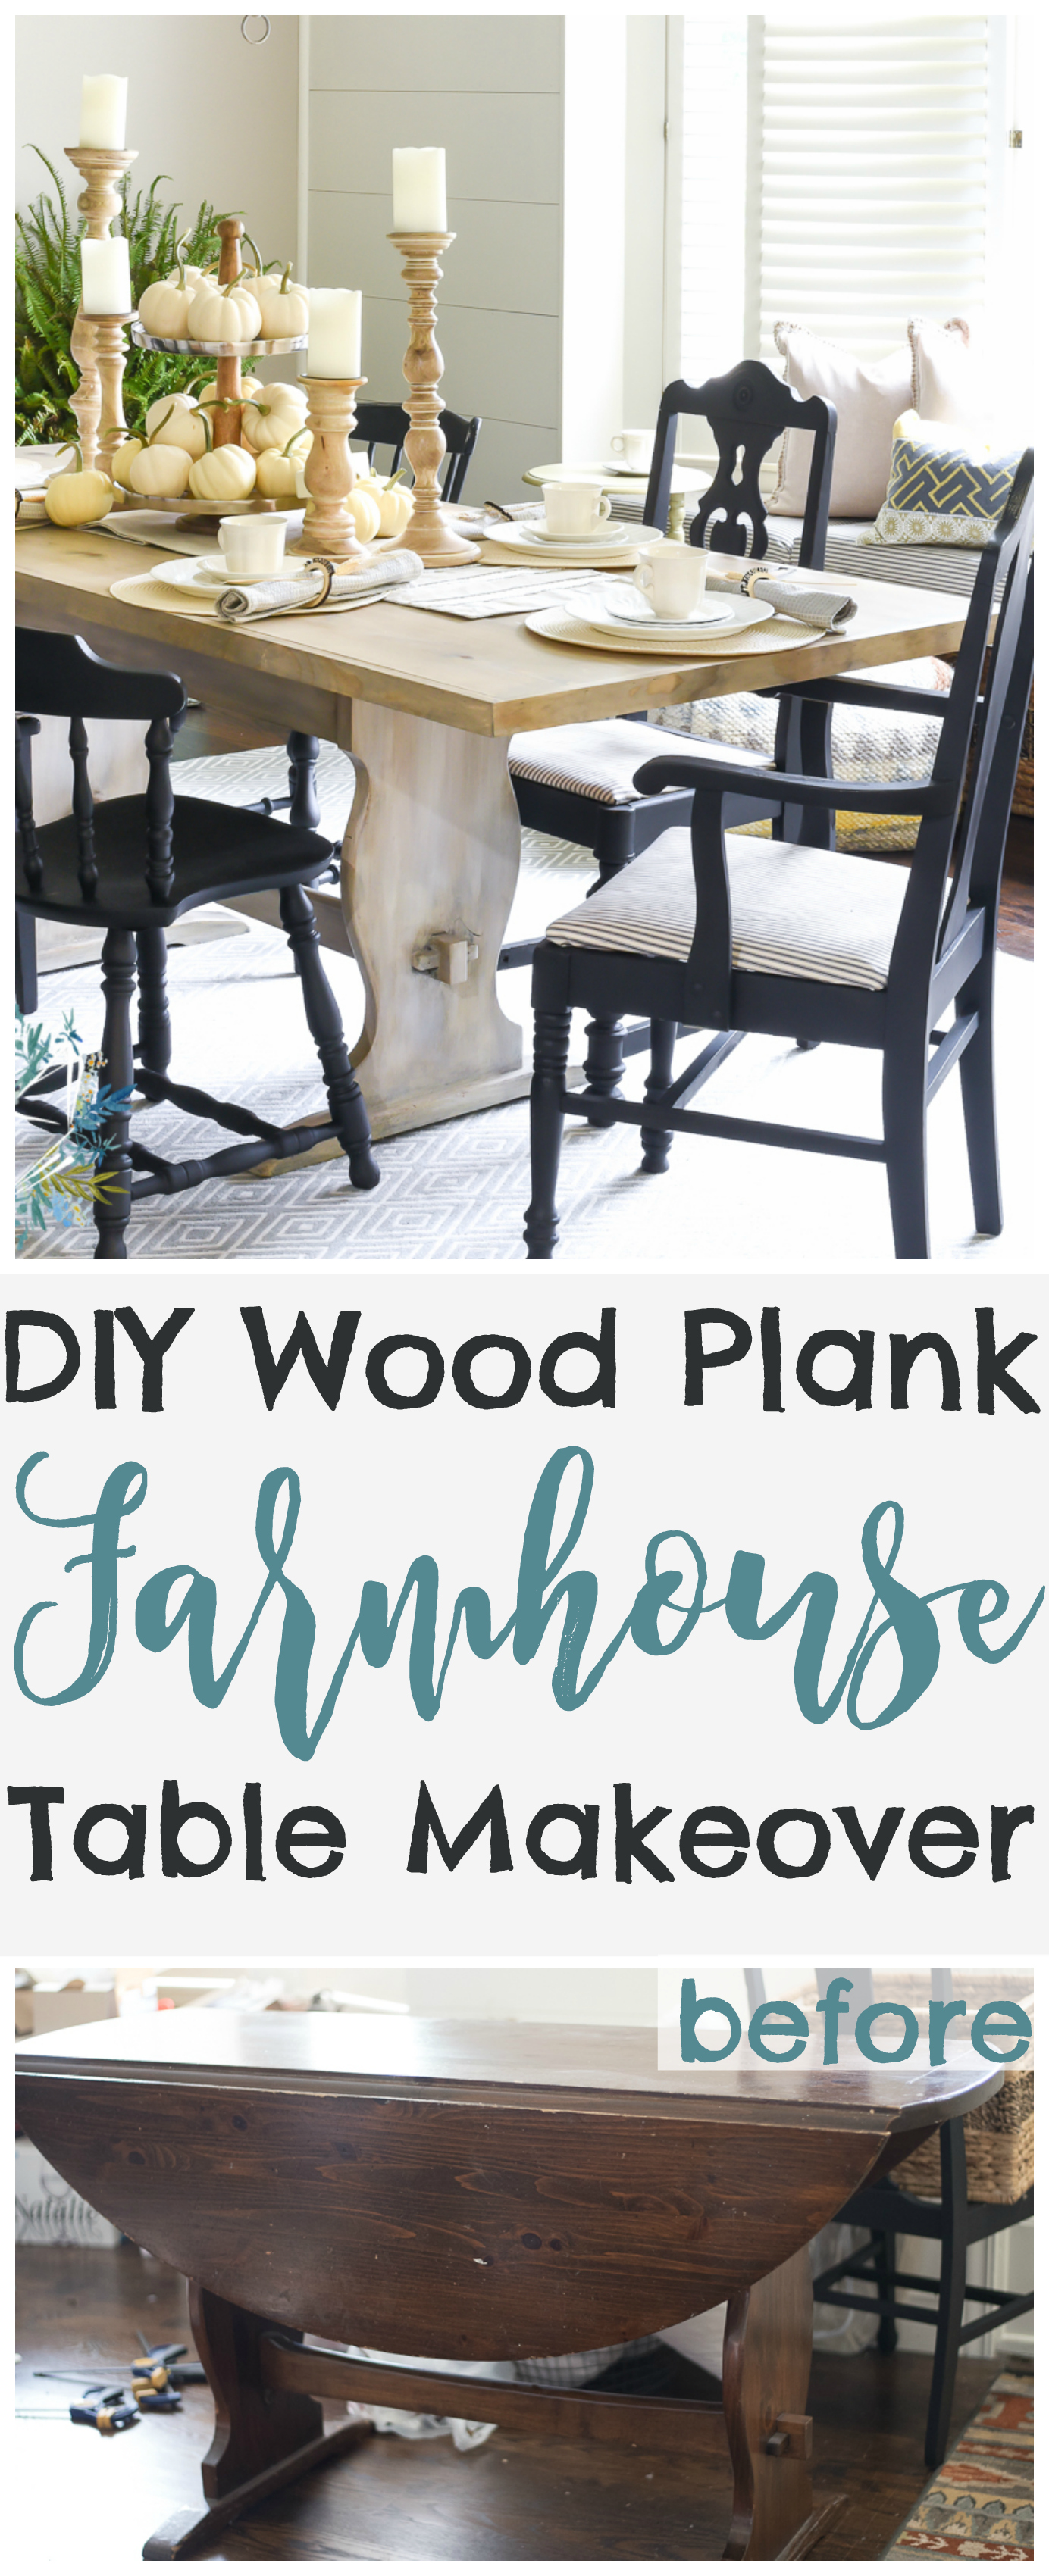 Diy dining table makeover - Diy Farmhouse Table Makeover From A Thrift Store Table